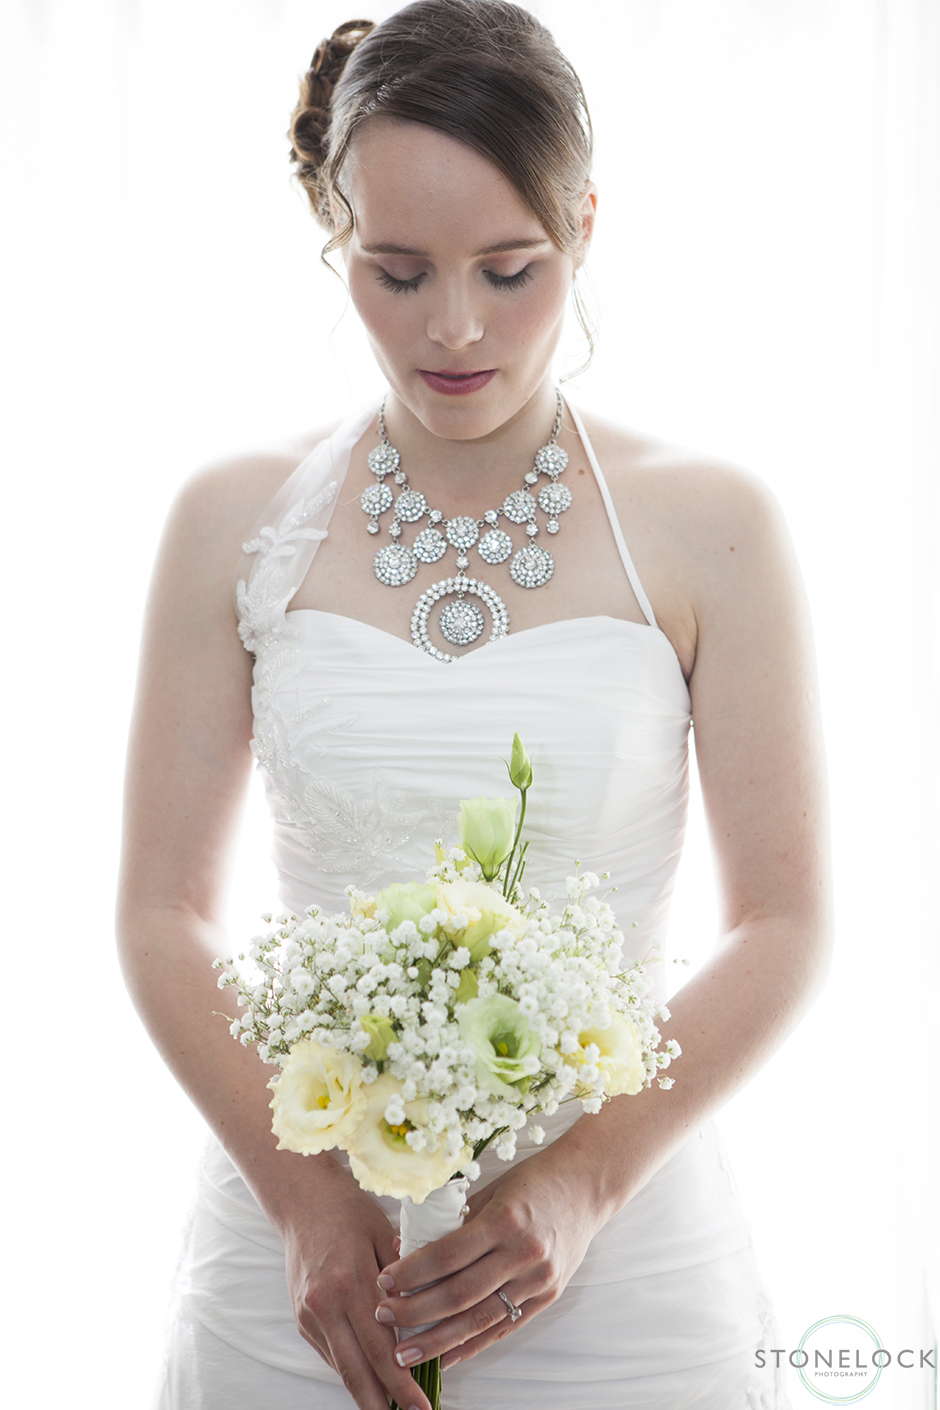 A photograph of a bride holds her flowers on her wedding day in front of a window, she is backlit and looks down at the flowers